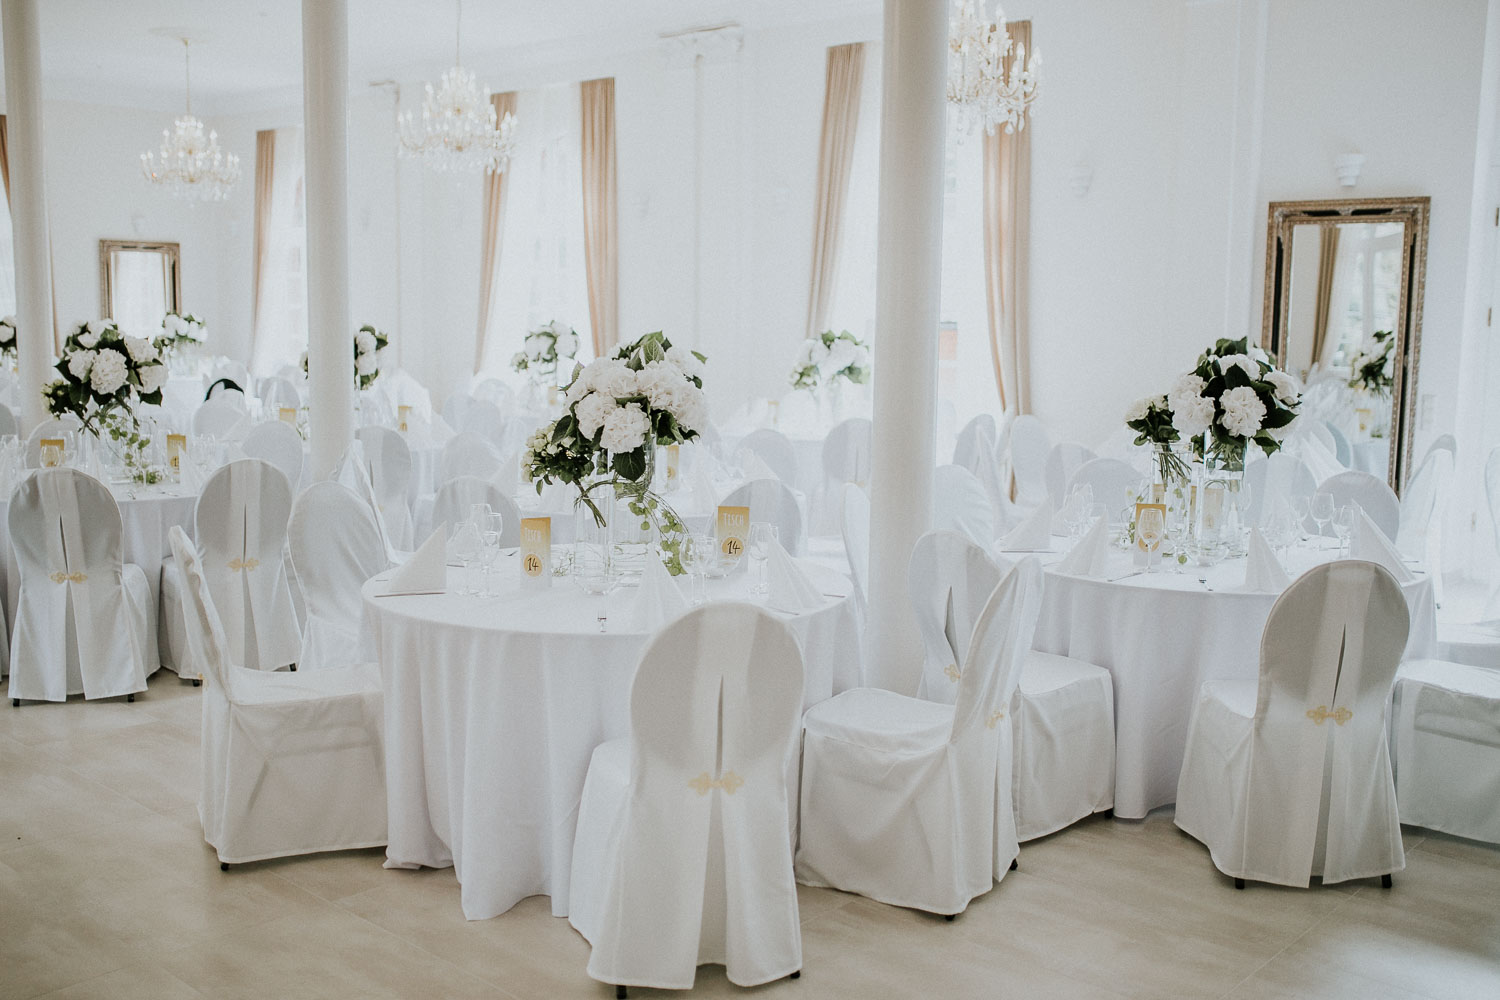 Altes Kurhotel Pforzheim Wedding